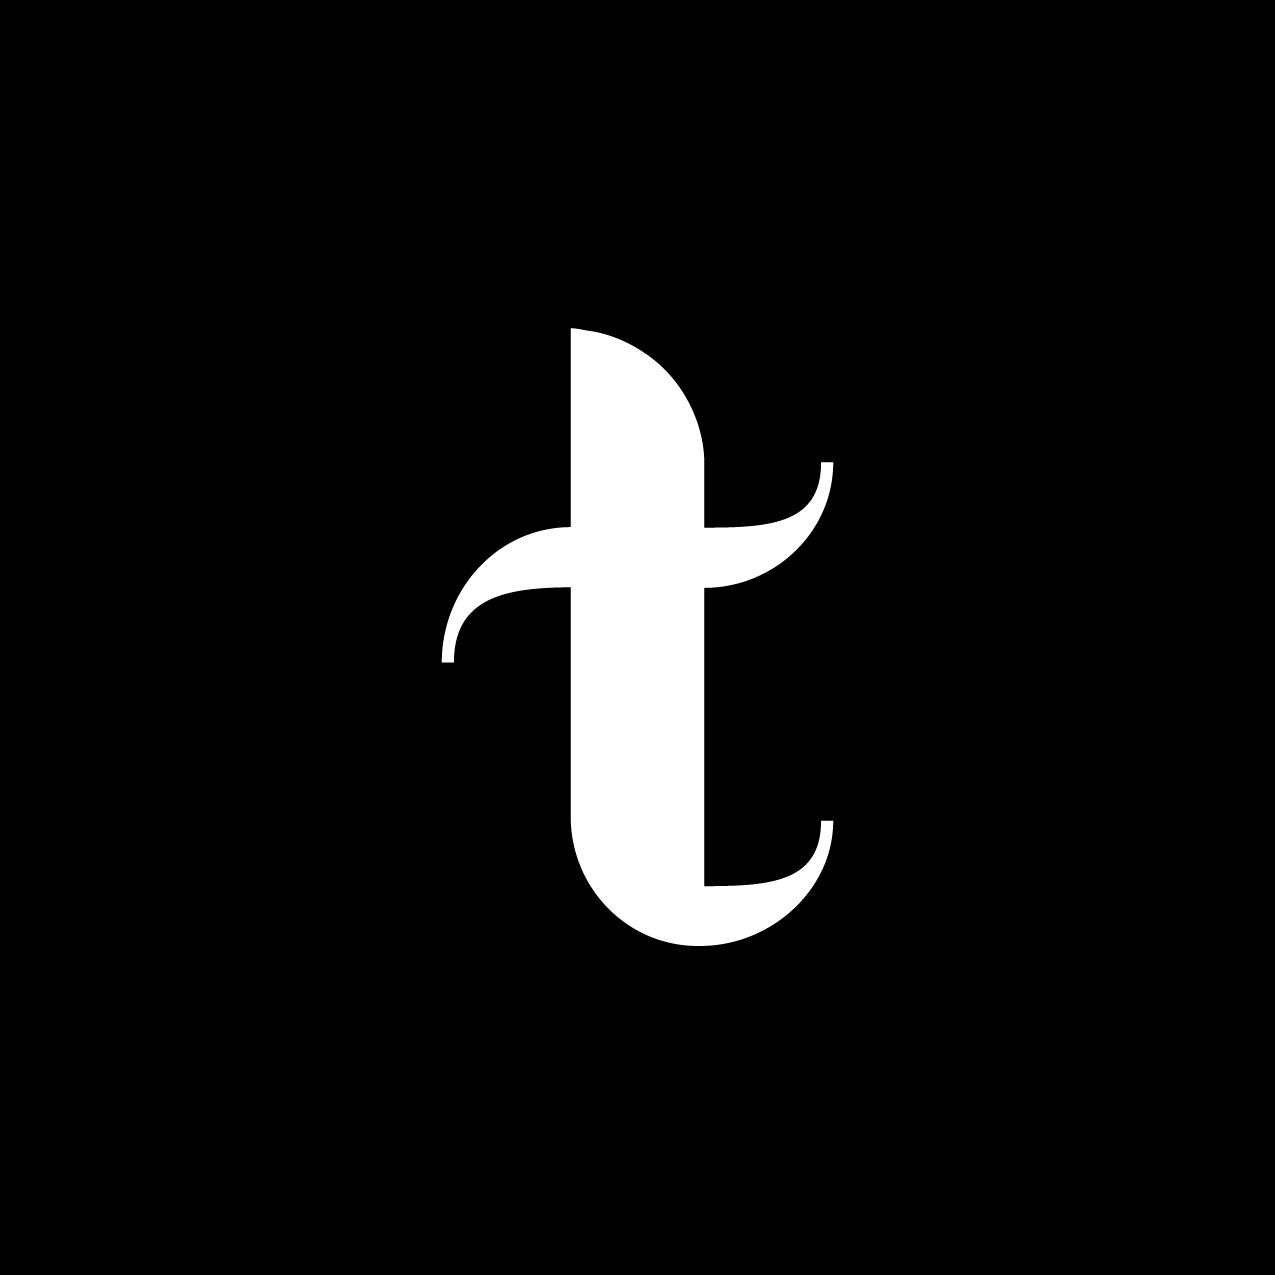 Letter T9 Design by Furia